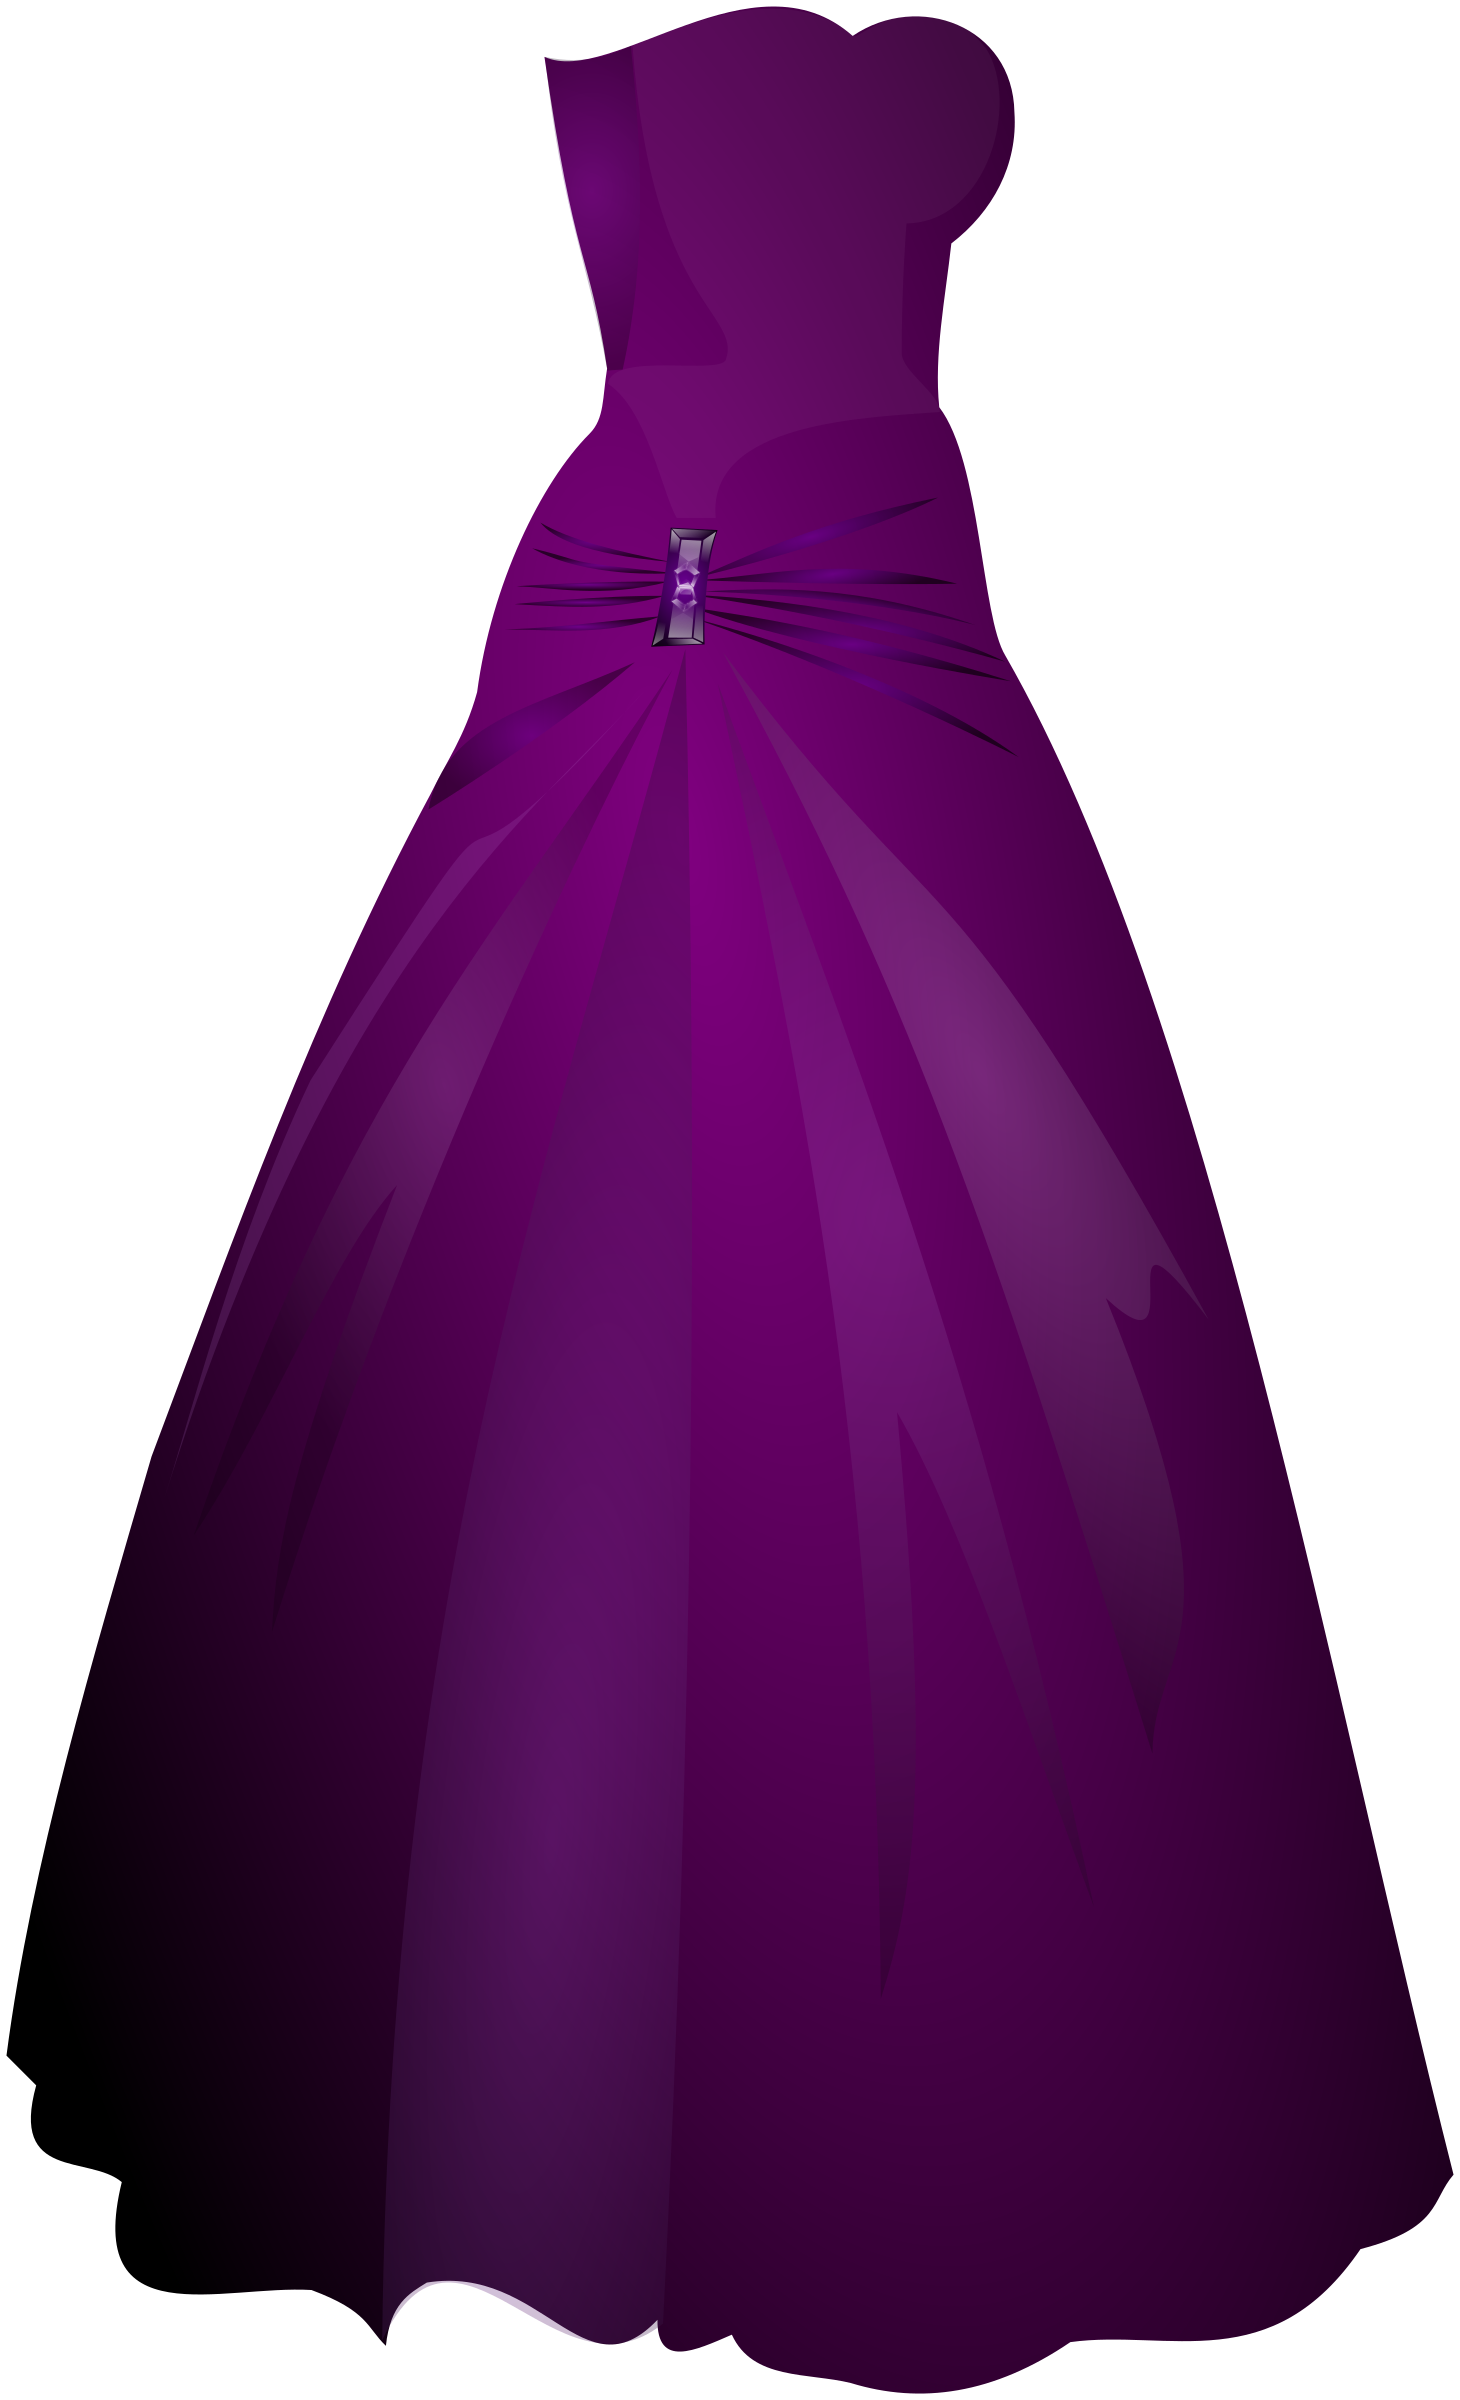 dress clipart gown